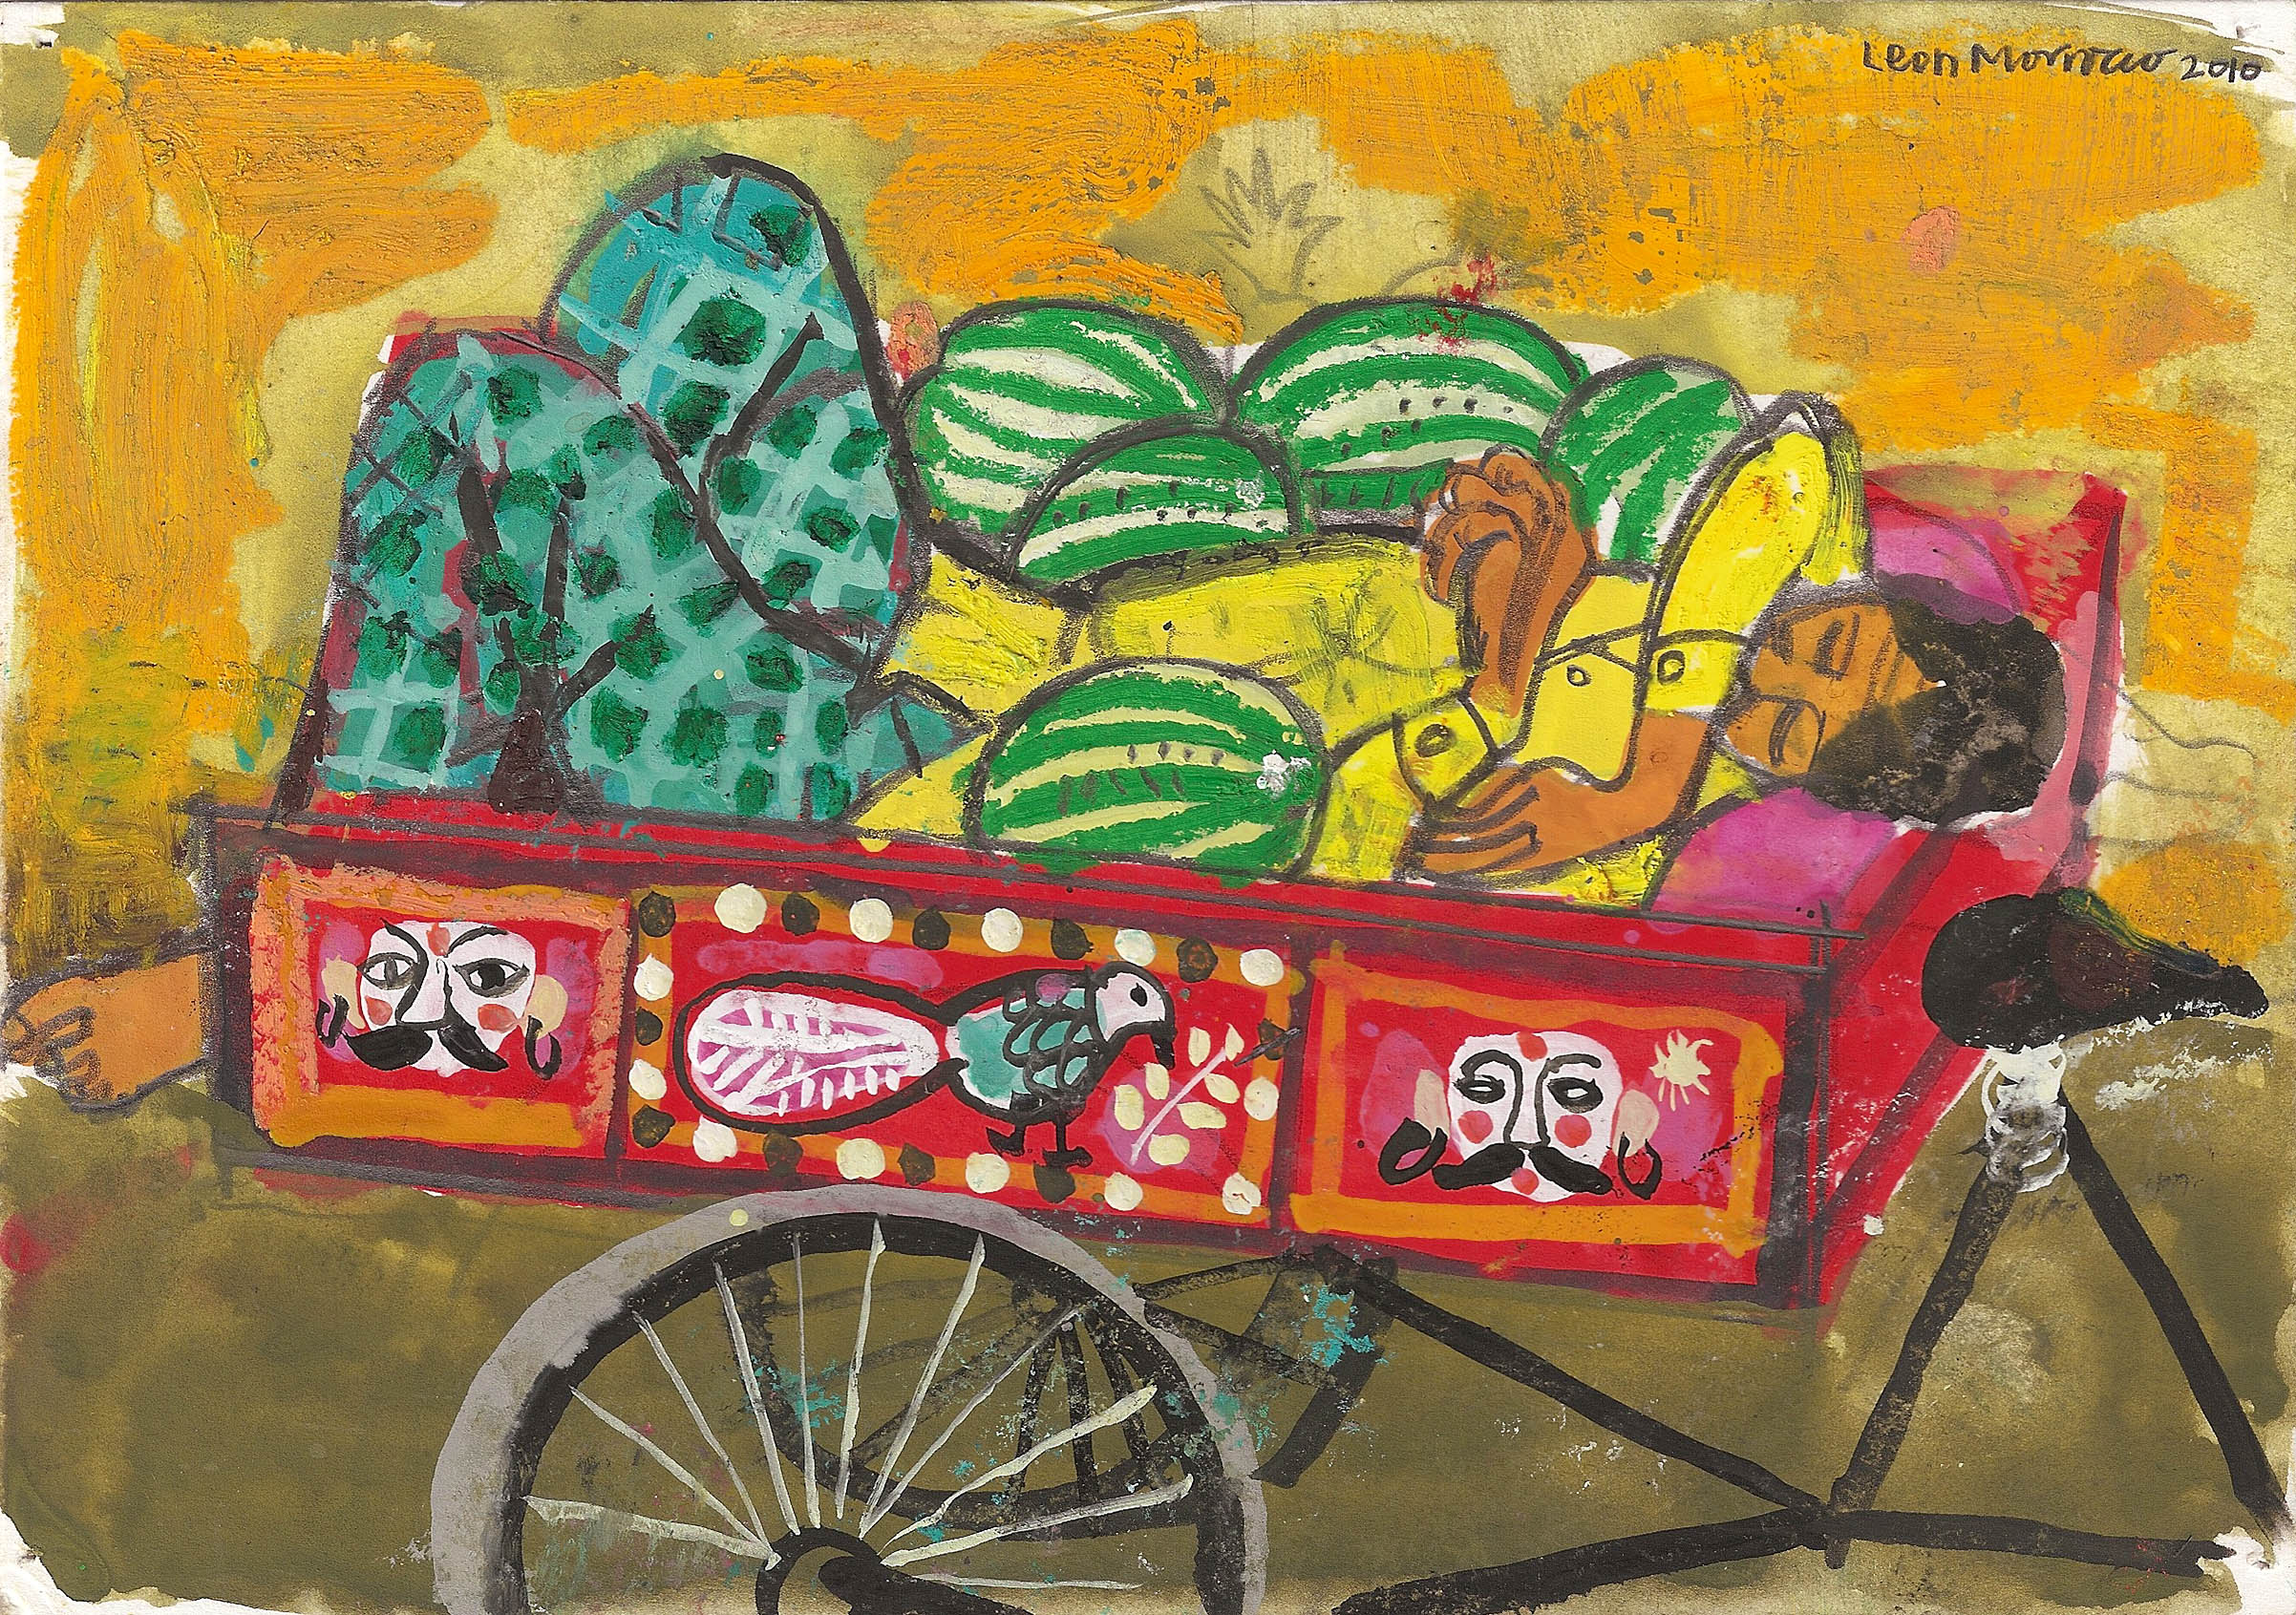 Leon Morrocco - Melon Seller sleeping, Madras – 2010